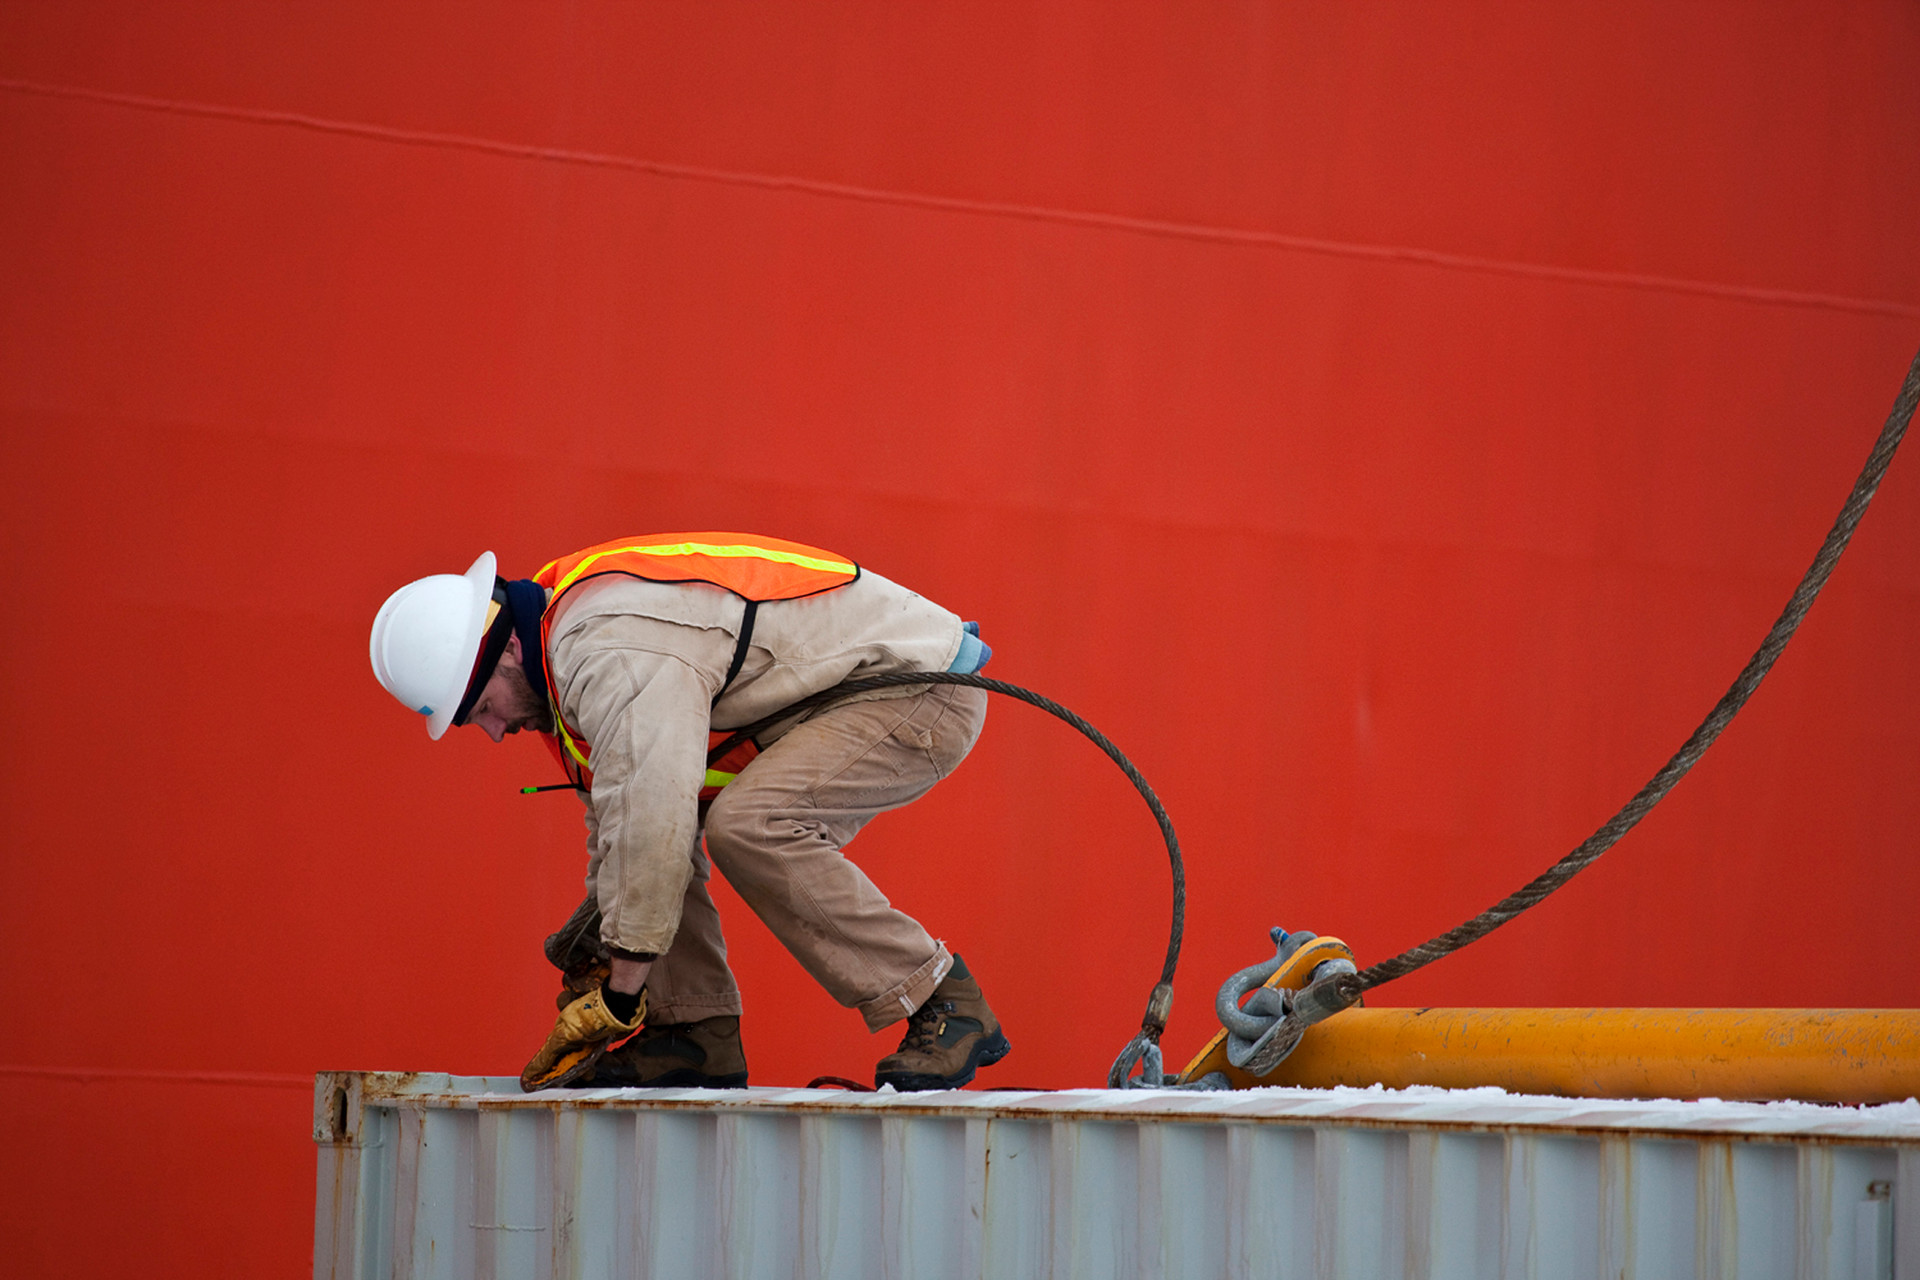 A worker connecting cables on the LM Gould Research Vessel. Palmer Station Antarctica, 2008